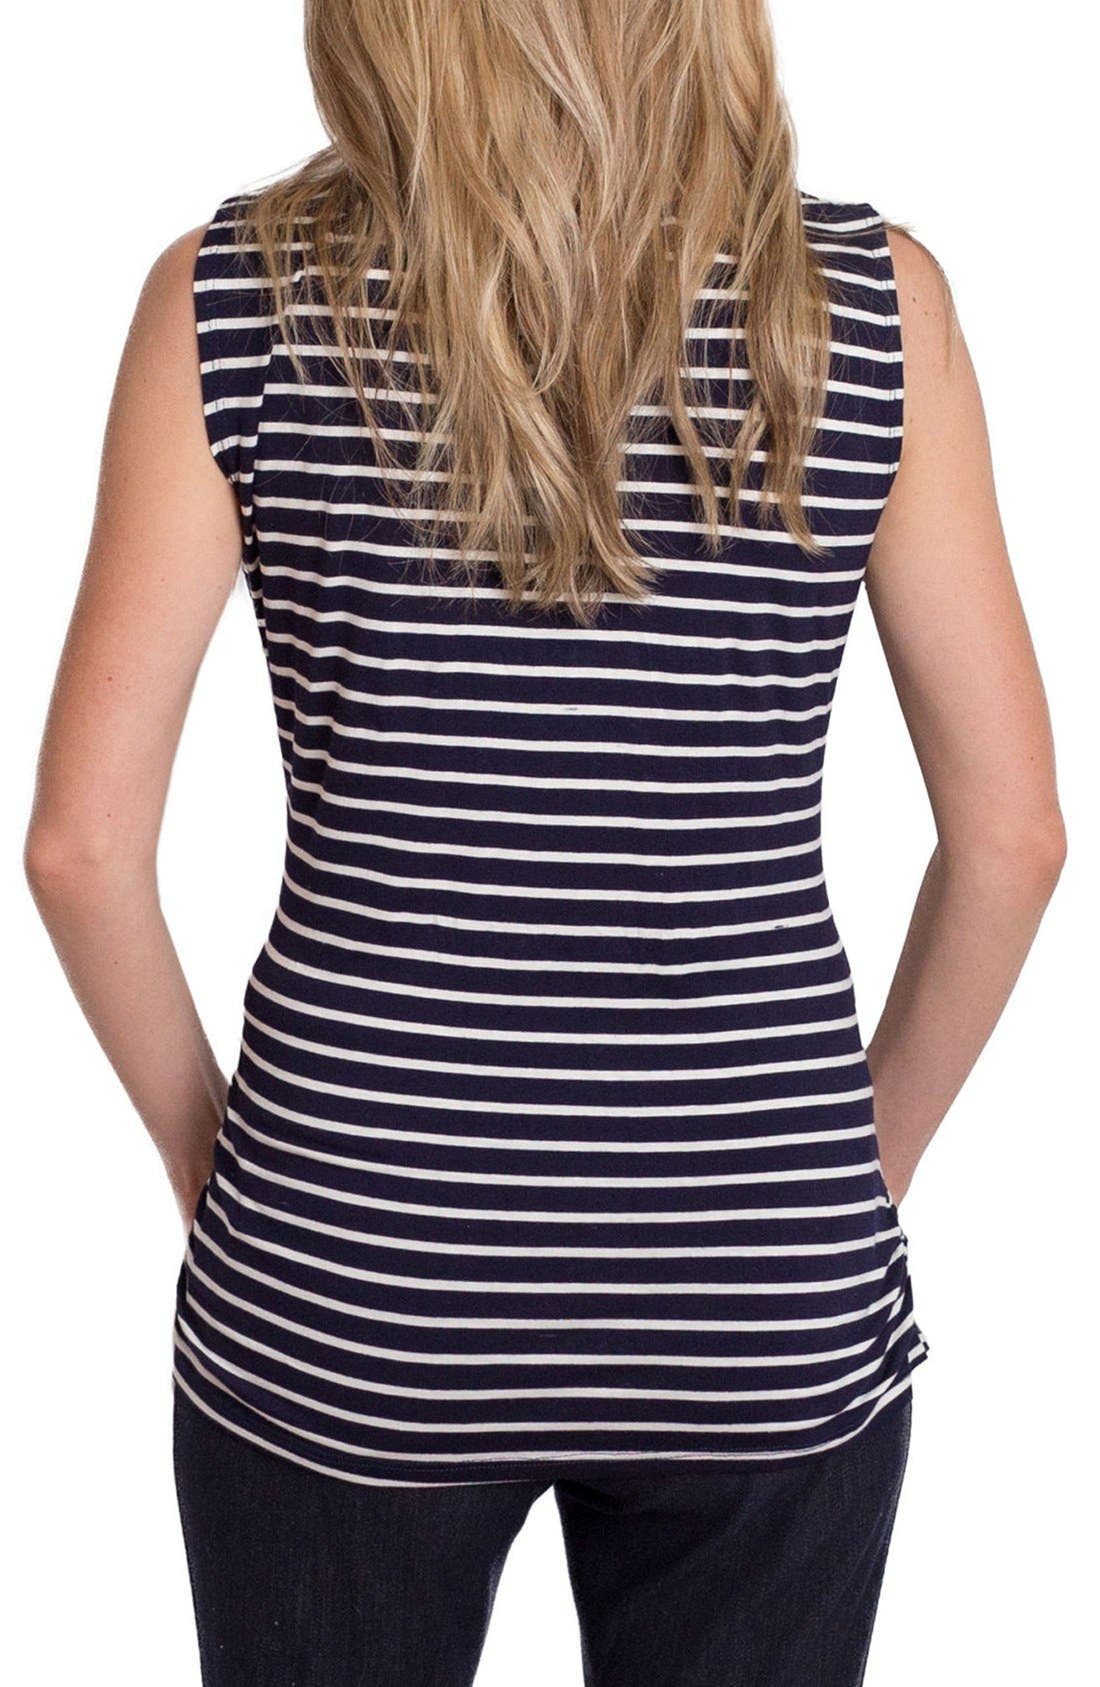 Trendy Nursing Tank,                             Alternate thumbnail 6, color,                             NAVY/ WHITE STRIPE